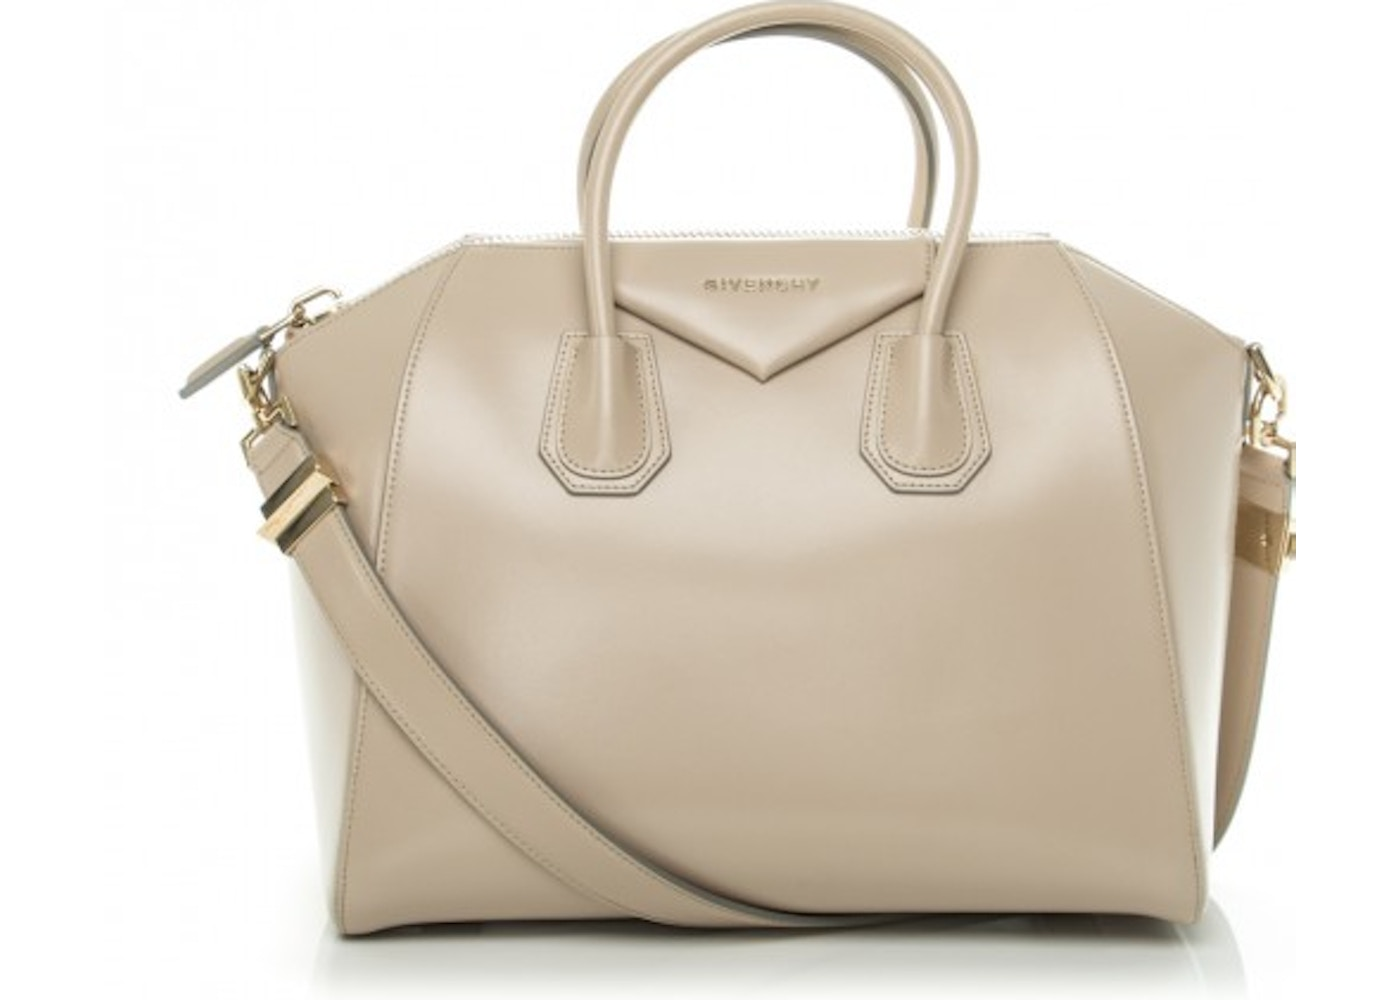 Givenchy Antigona Tote Smooth Calfskin Medium Beige 41c6729678dd4